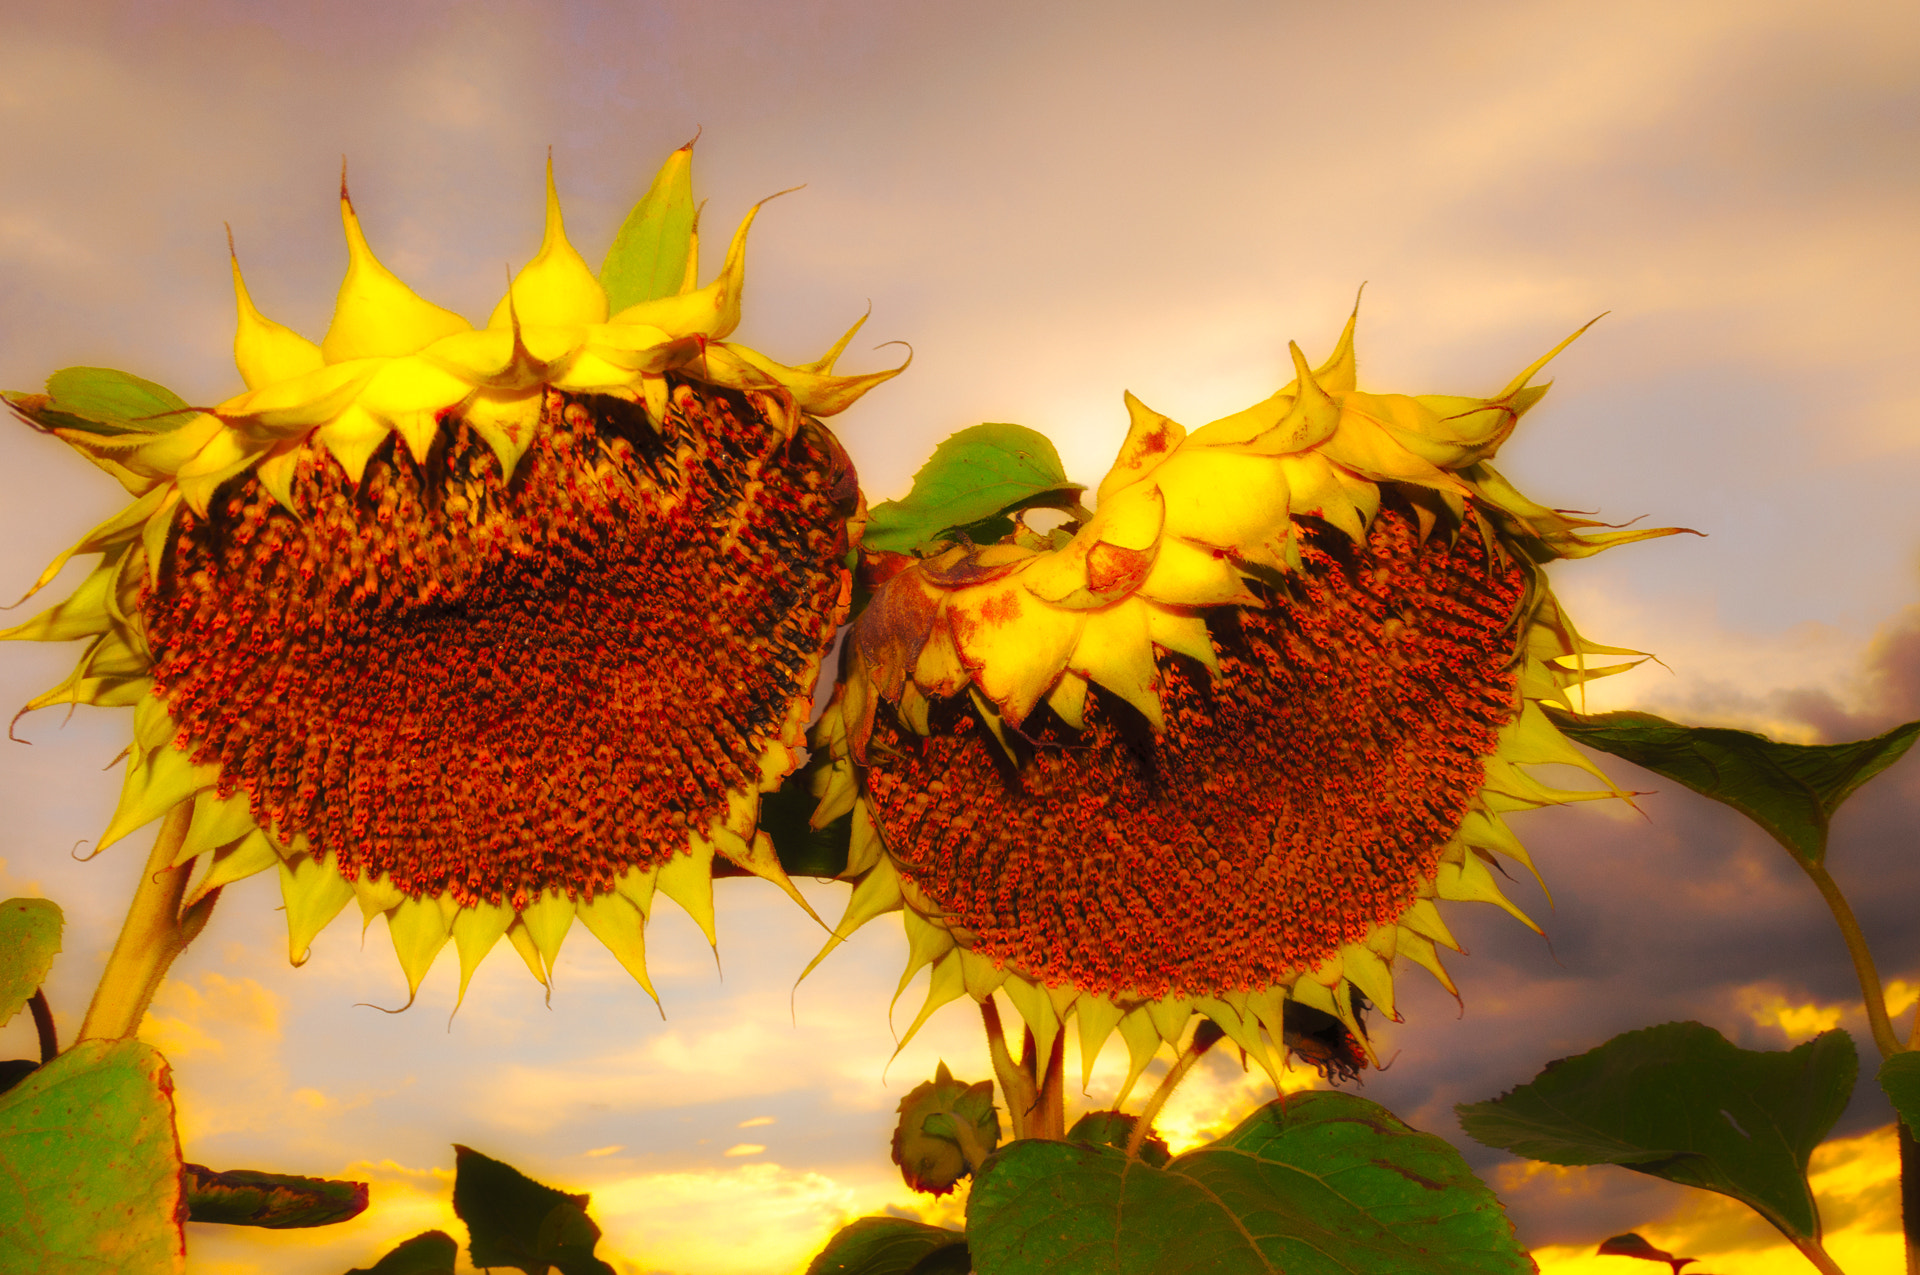 Photograph Sunflowers by Ernst Gamauf on 500px